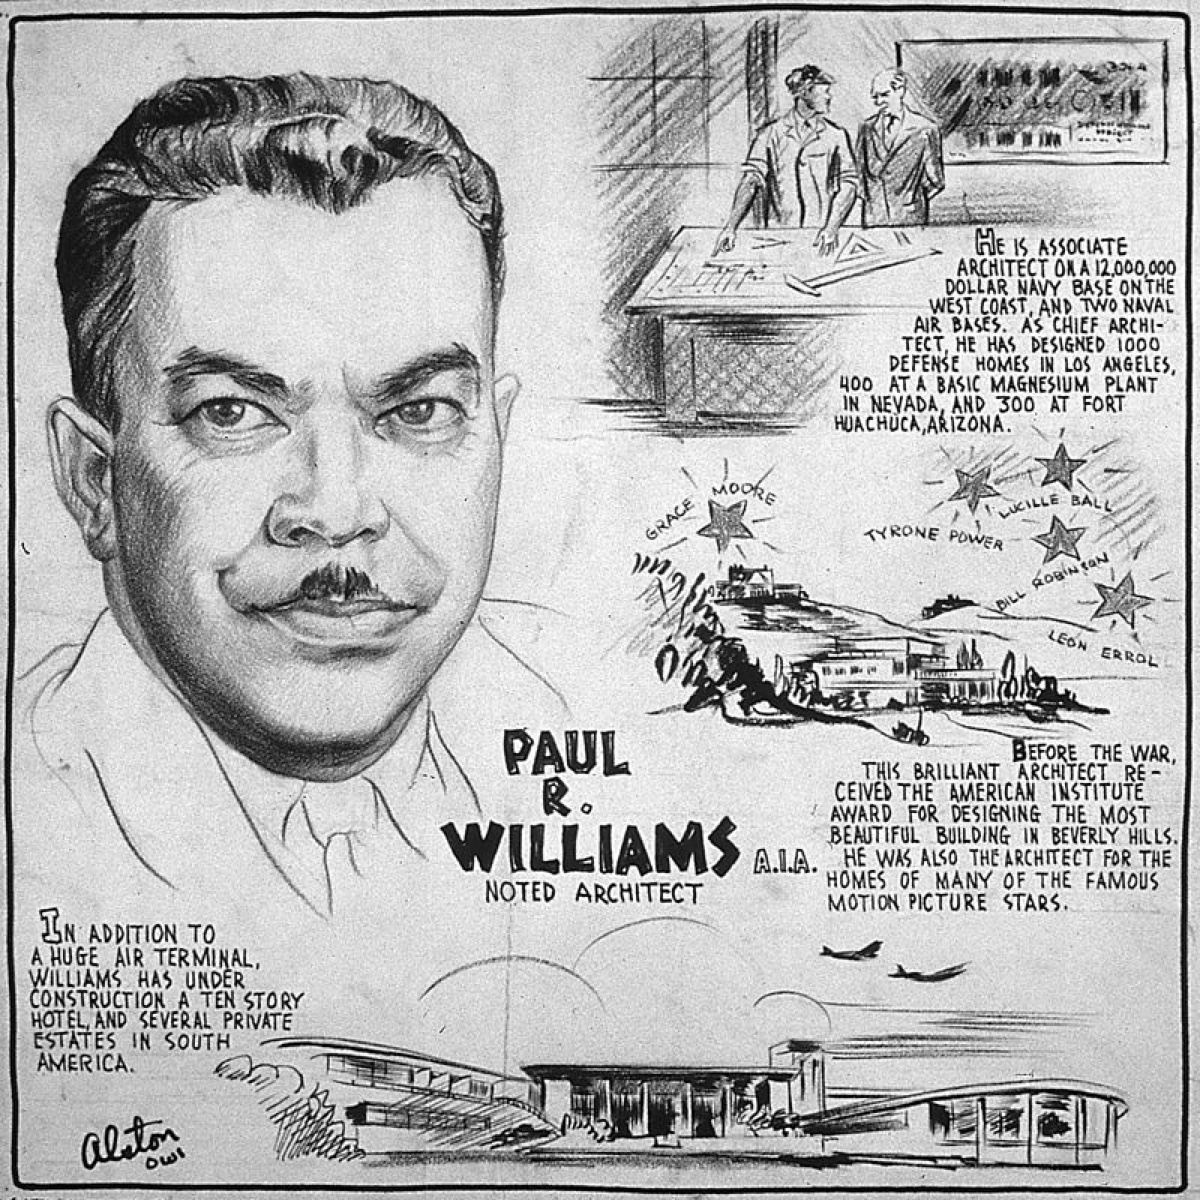 An illustrated guide to Williams, created during his time working for the Army Corps of Engineers. Image via the Paul Revere Williams Project.